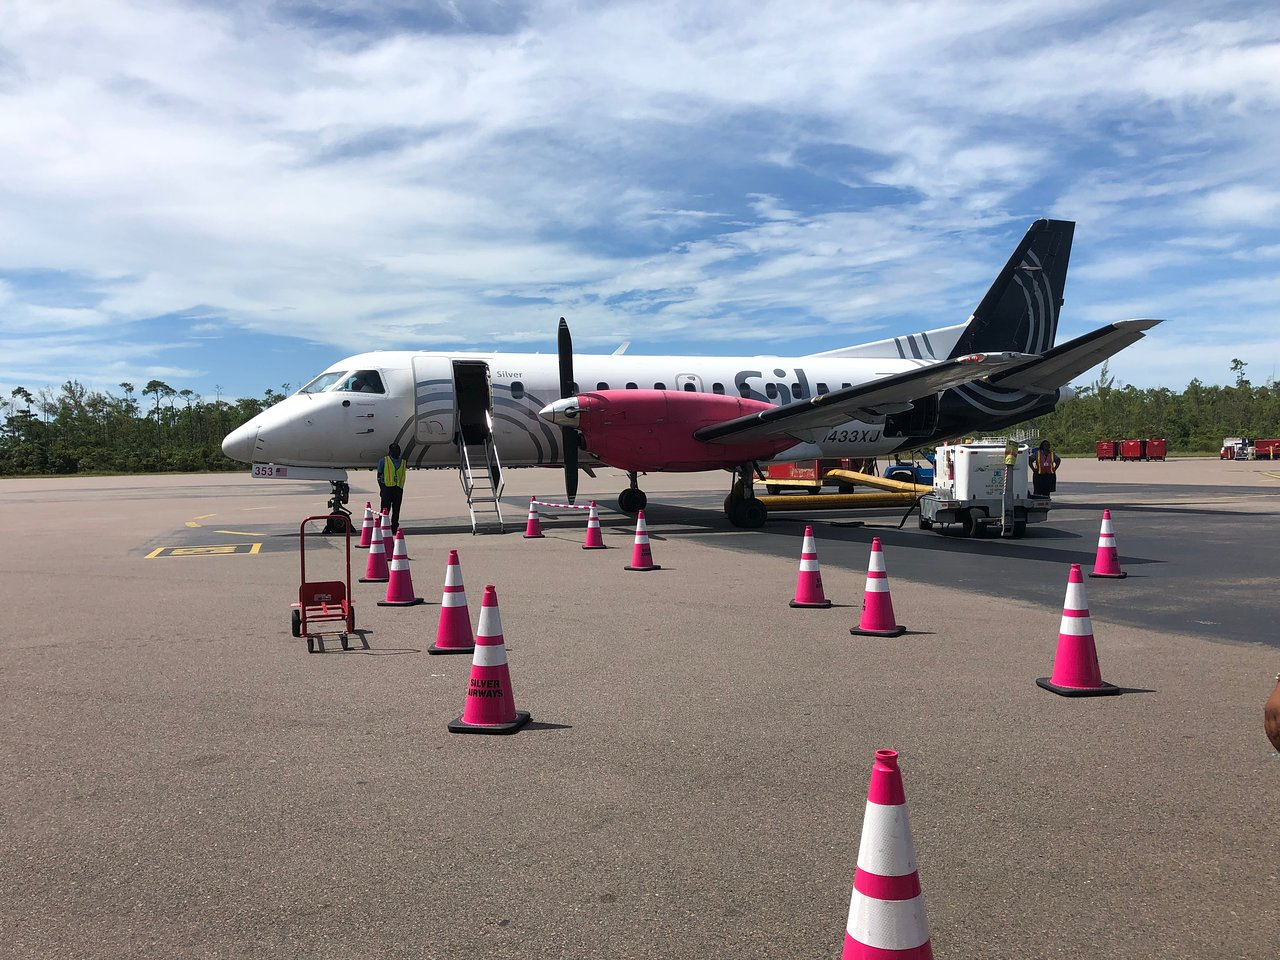 Silver Airways Flights and Reviews (with photos) - TripAdvisor on ameriflight route map, luxair route map, etihad airways route map, qatar airways route map, long john silver's map, boutique air route map, eastern air lines route map, volaris route map, frontier route map, saudia route map, us airways route map, island air route map, delta air lines atlanta airport map, air macau route map, air niugini route map, envoy air route map, pan american world airways route map, ravn alaska route map, air zimbabwe route map,